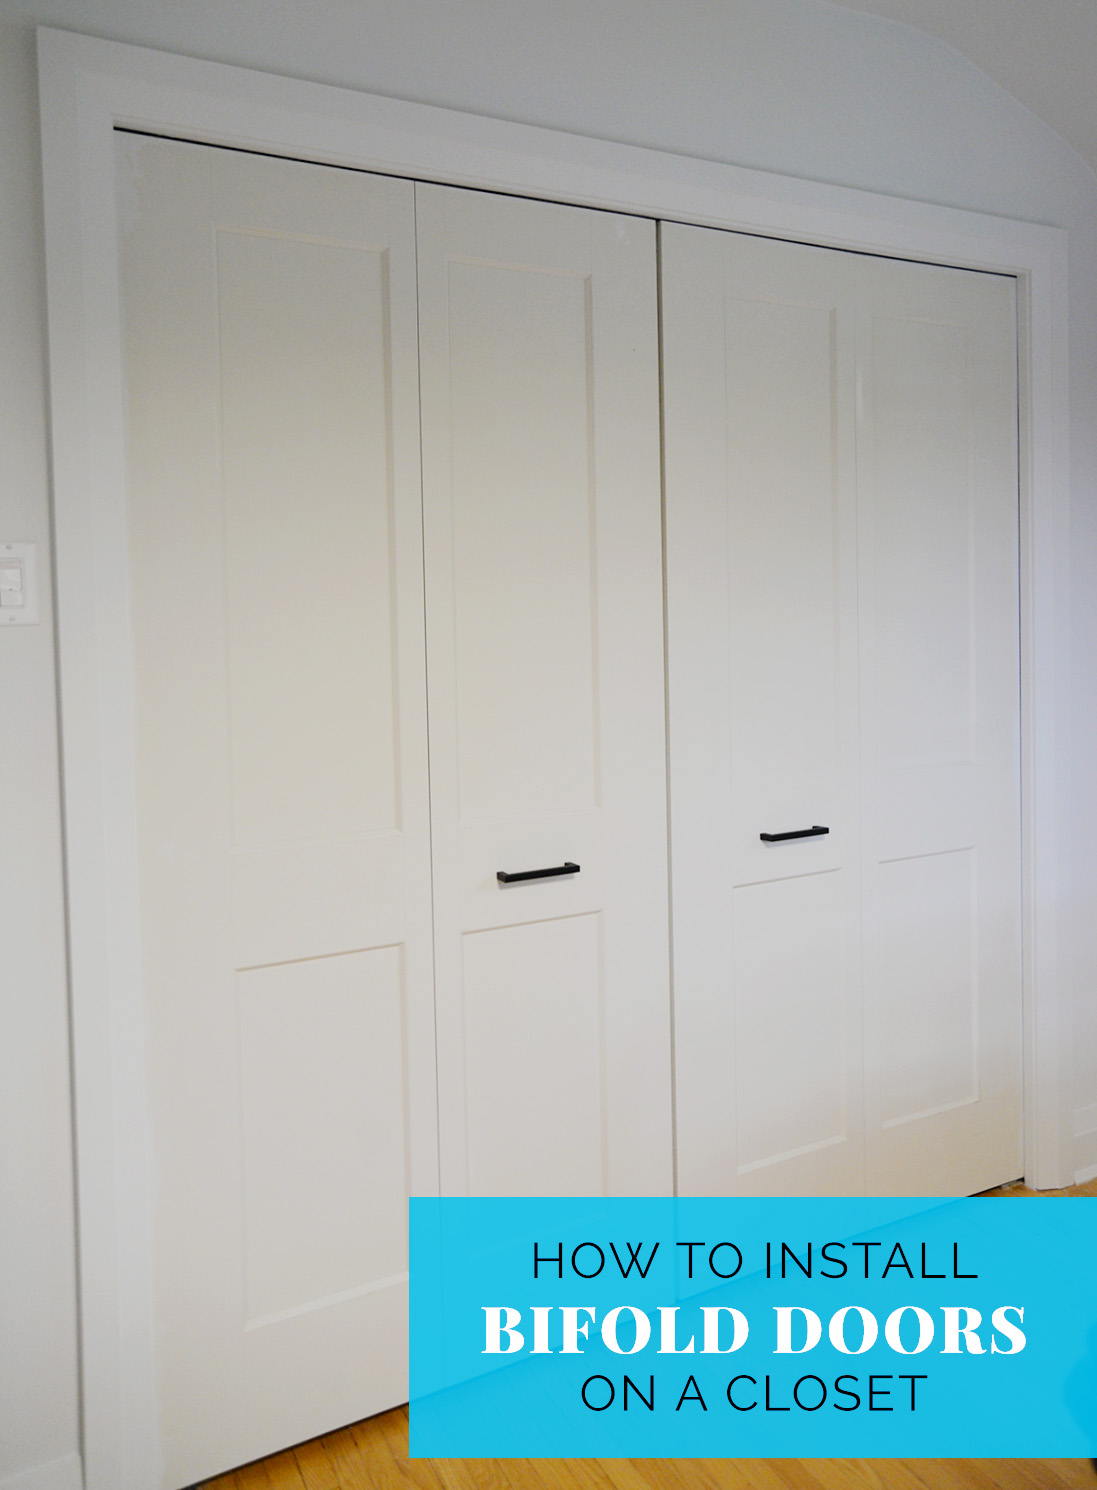 bifold closet door handle, how to install a bifold closet door, bifold closet door instructions, bifold knob placement